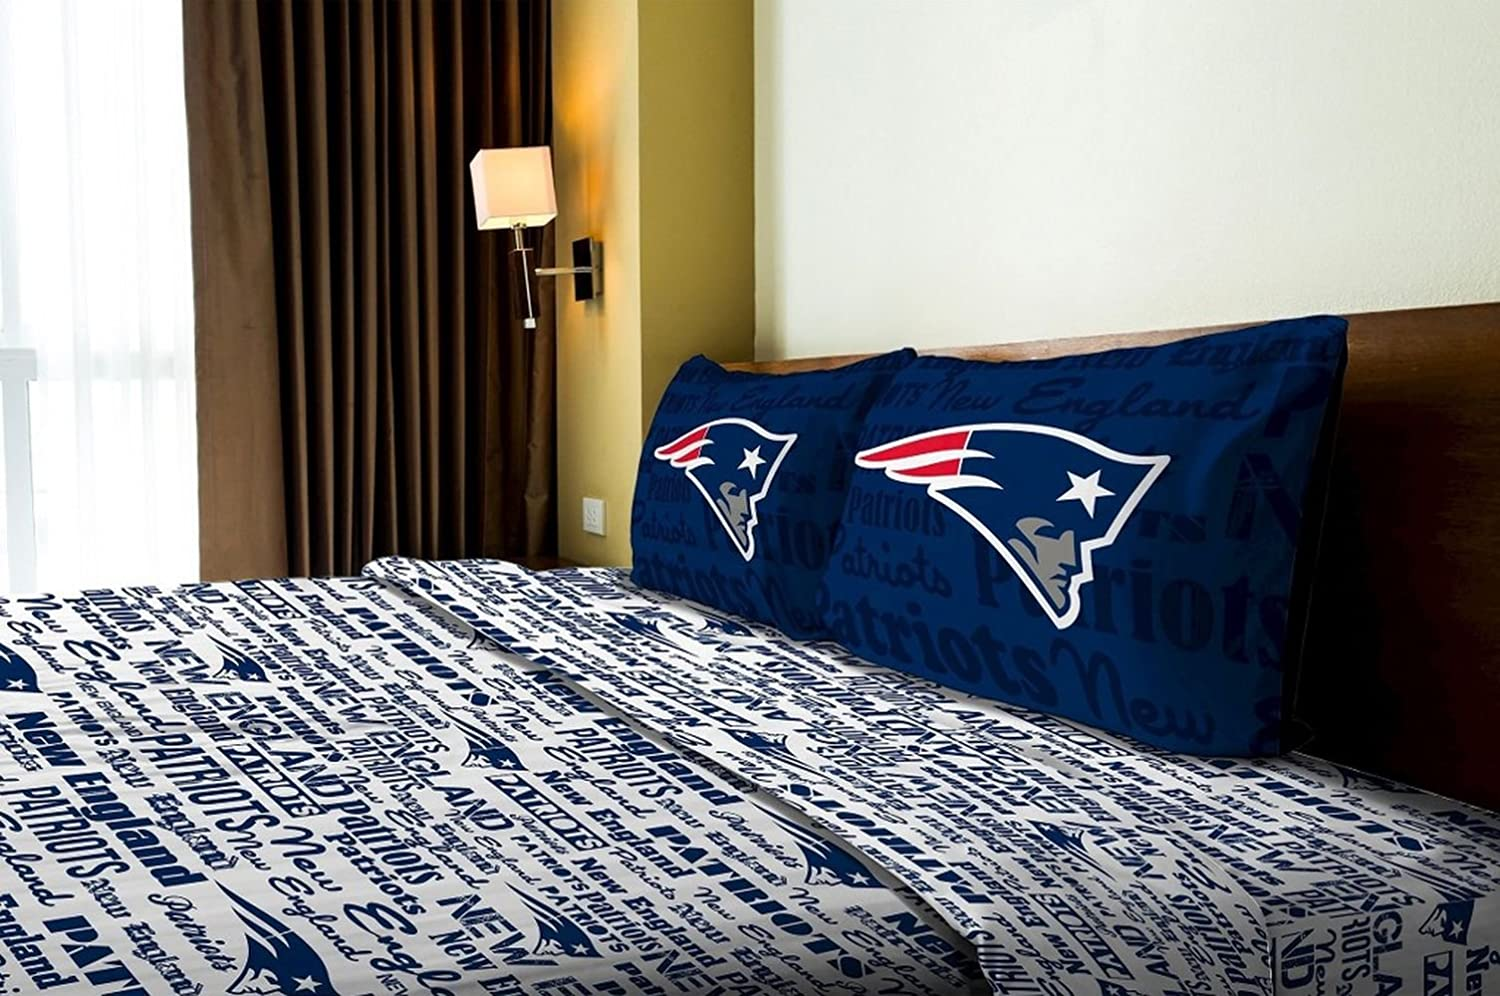 Bon Amazon.com: New England Patriots Full Comforter U0026 Sheet Set (5 Piece  Bedding): Home U0026 Kitchen